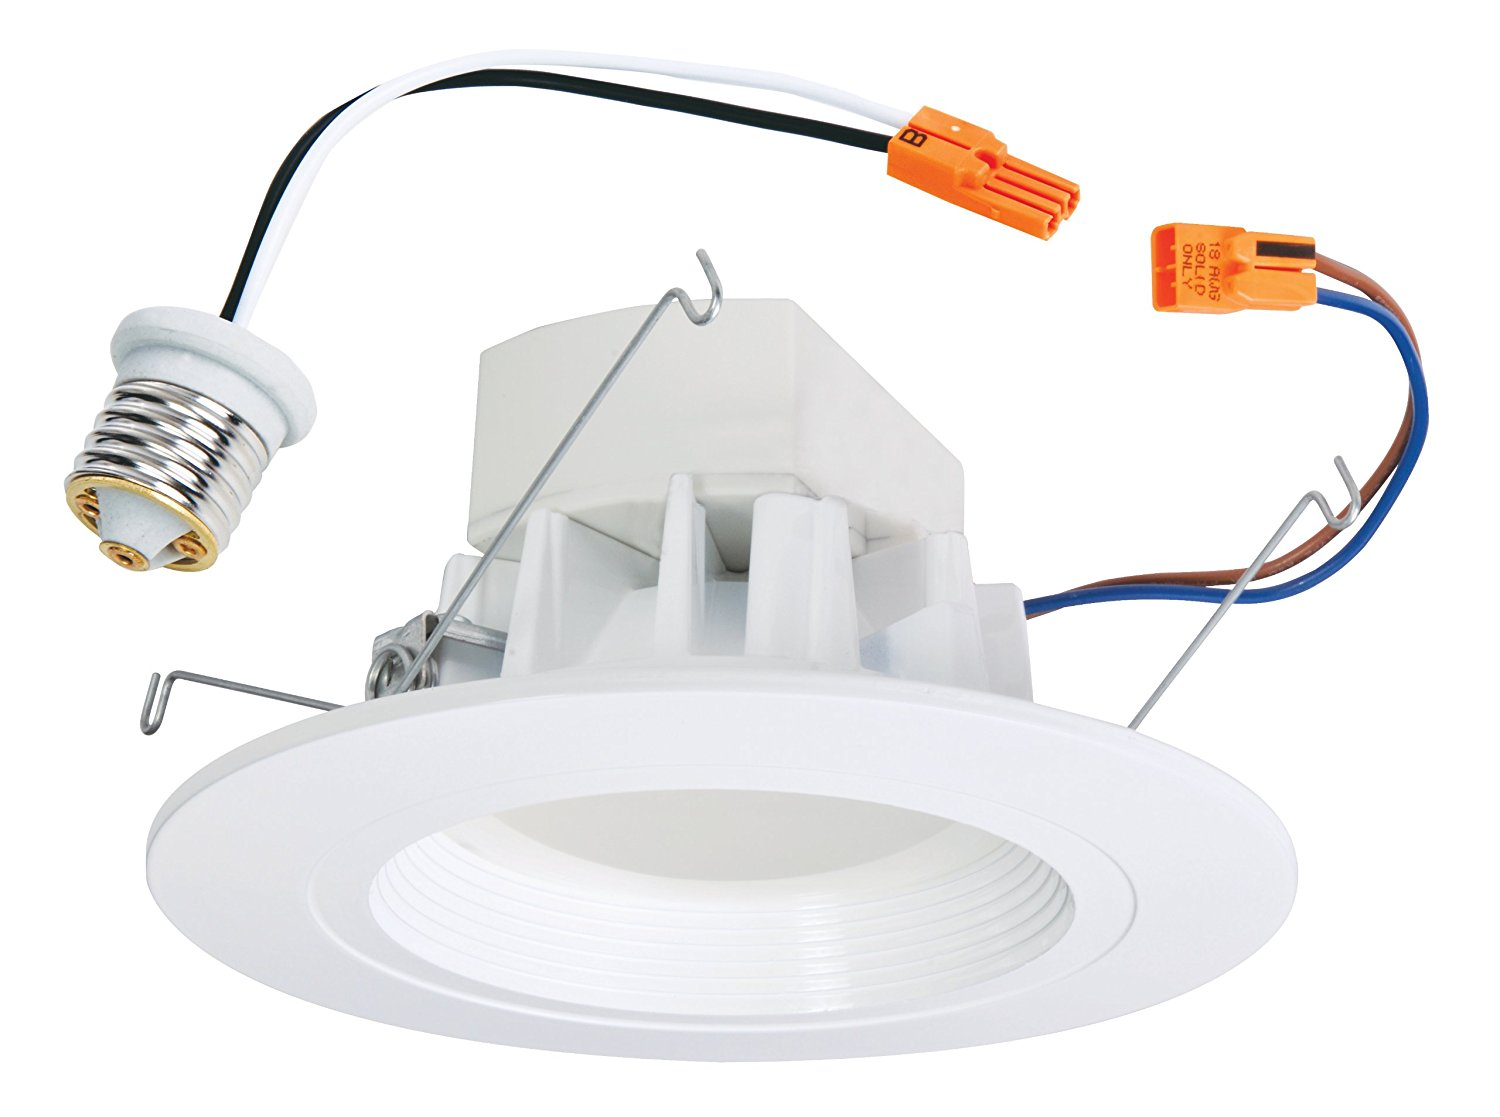 All-Pro ALED3T24 ALL-Pro LED Retrofit Recessed Downlight Fits 5-inch and 6-inch Housings Rated for Wet Location, Equivalent to 65 Watts, White